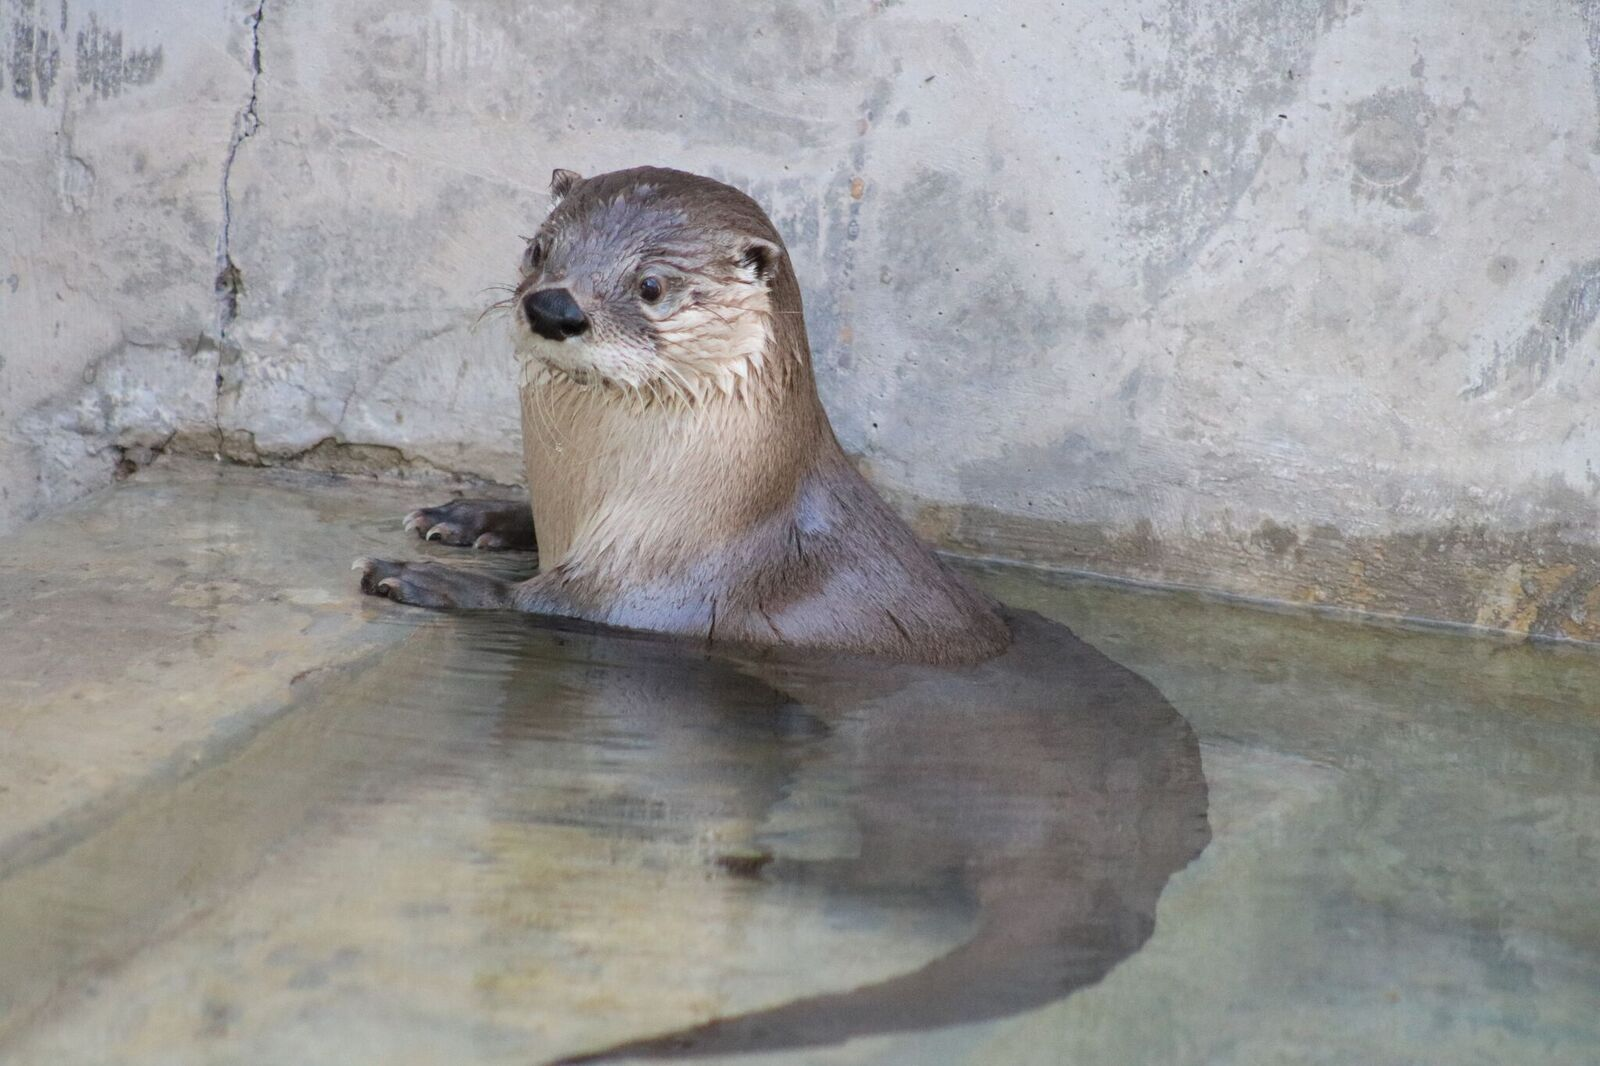 Otter Chaos in Water